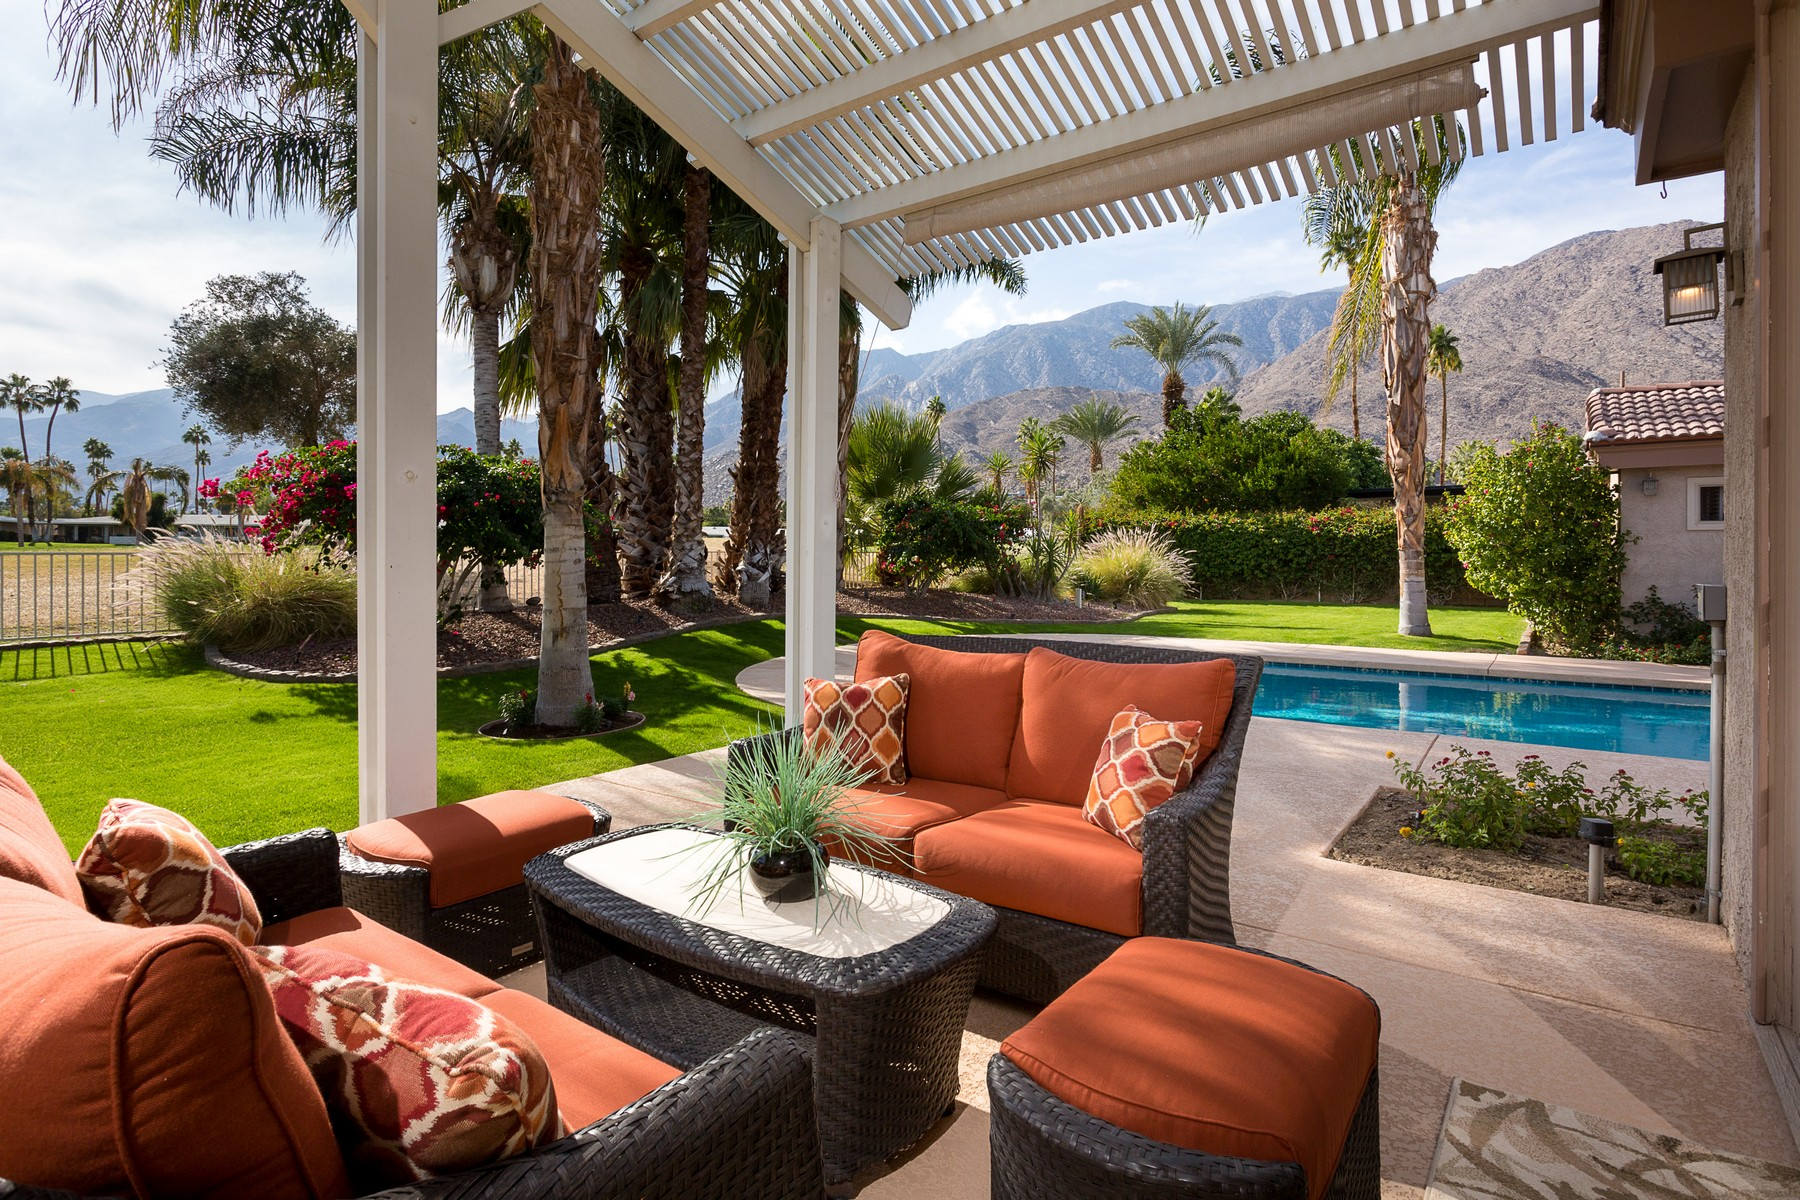 Single Family Home for Sale at 605 East Sierra Way Palm Springs, California 92264 United States